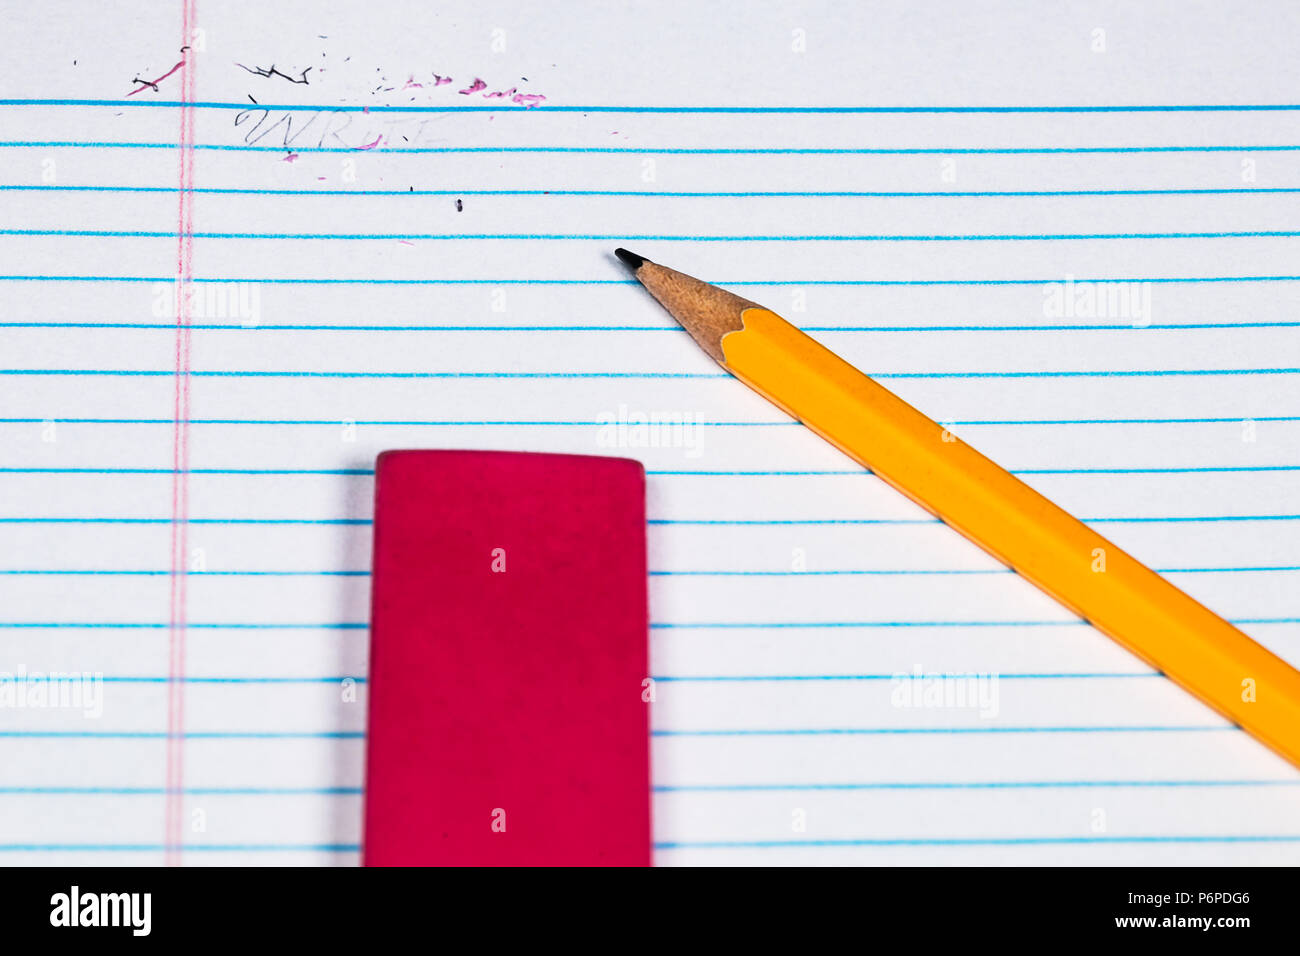 a #2 Pencil, Eraser, paper clips and Filler paper with plenty of room for Copy.  An erased word and eraser dust still present - Stock Image